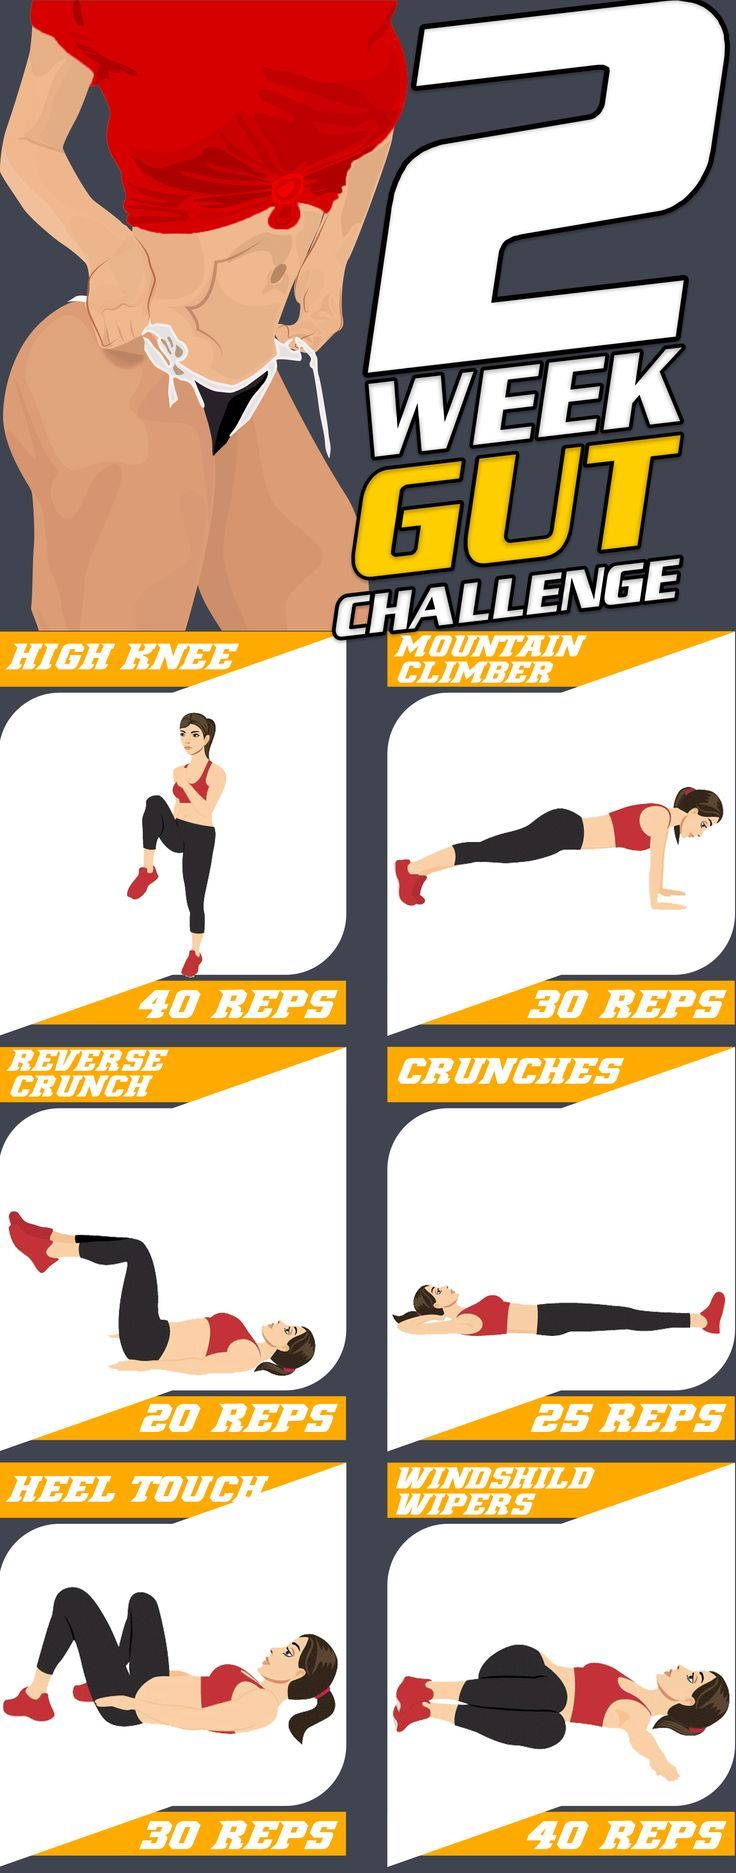 Ready for this 6 pack abs challenge ?